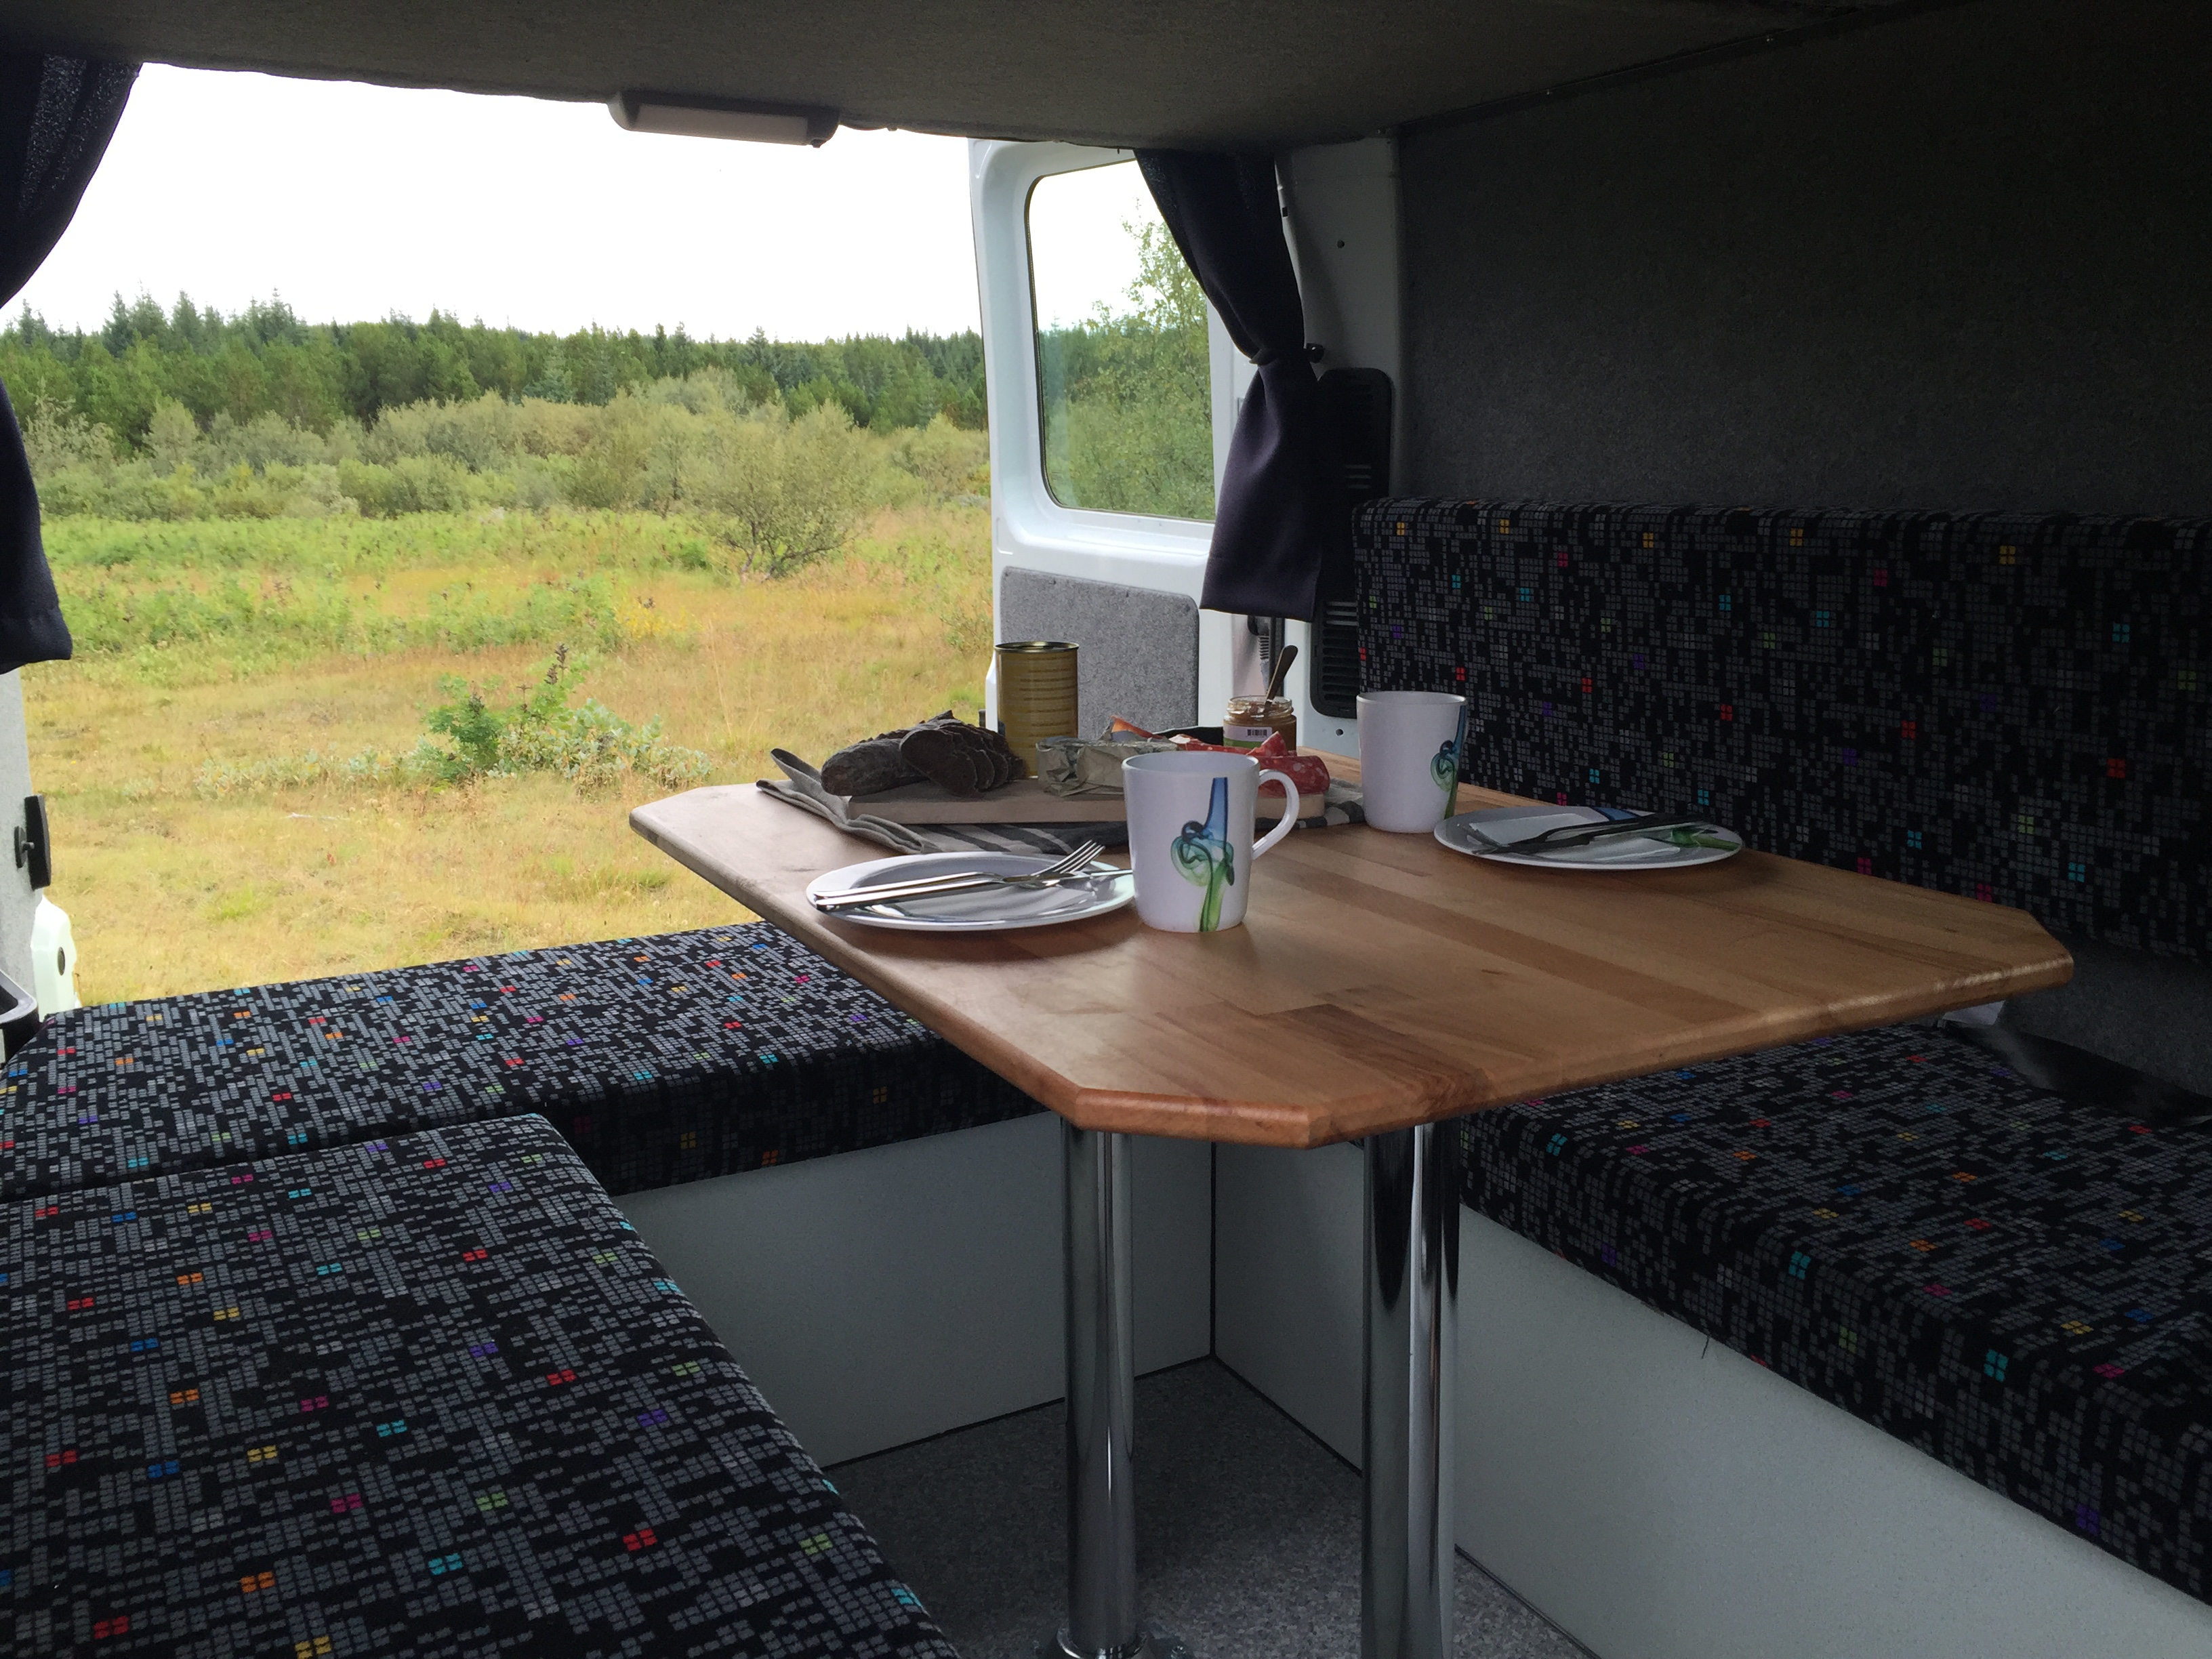 Motorhome Iceland - Campers Iceland